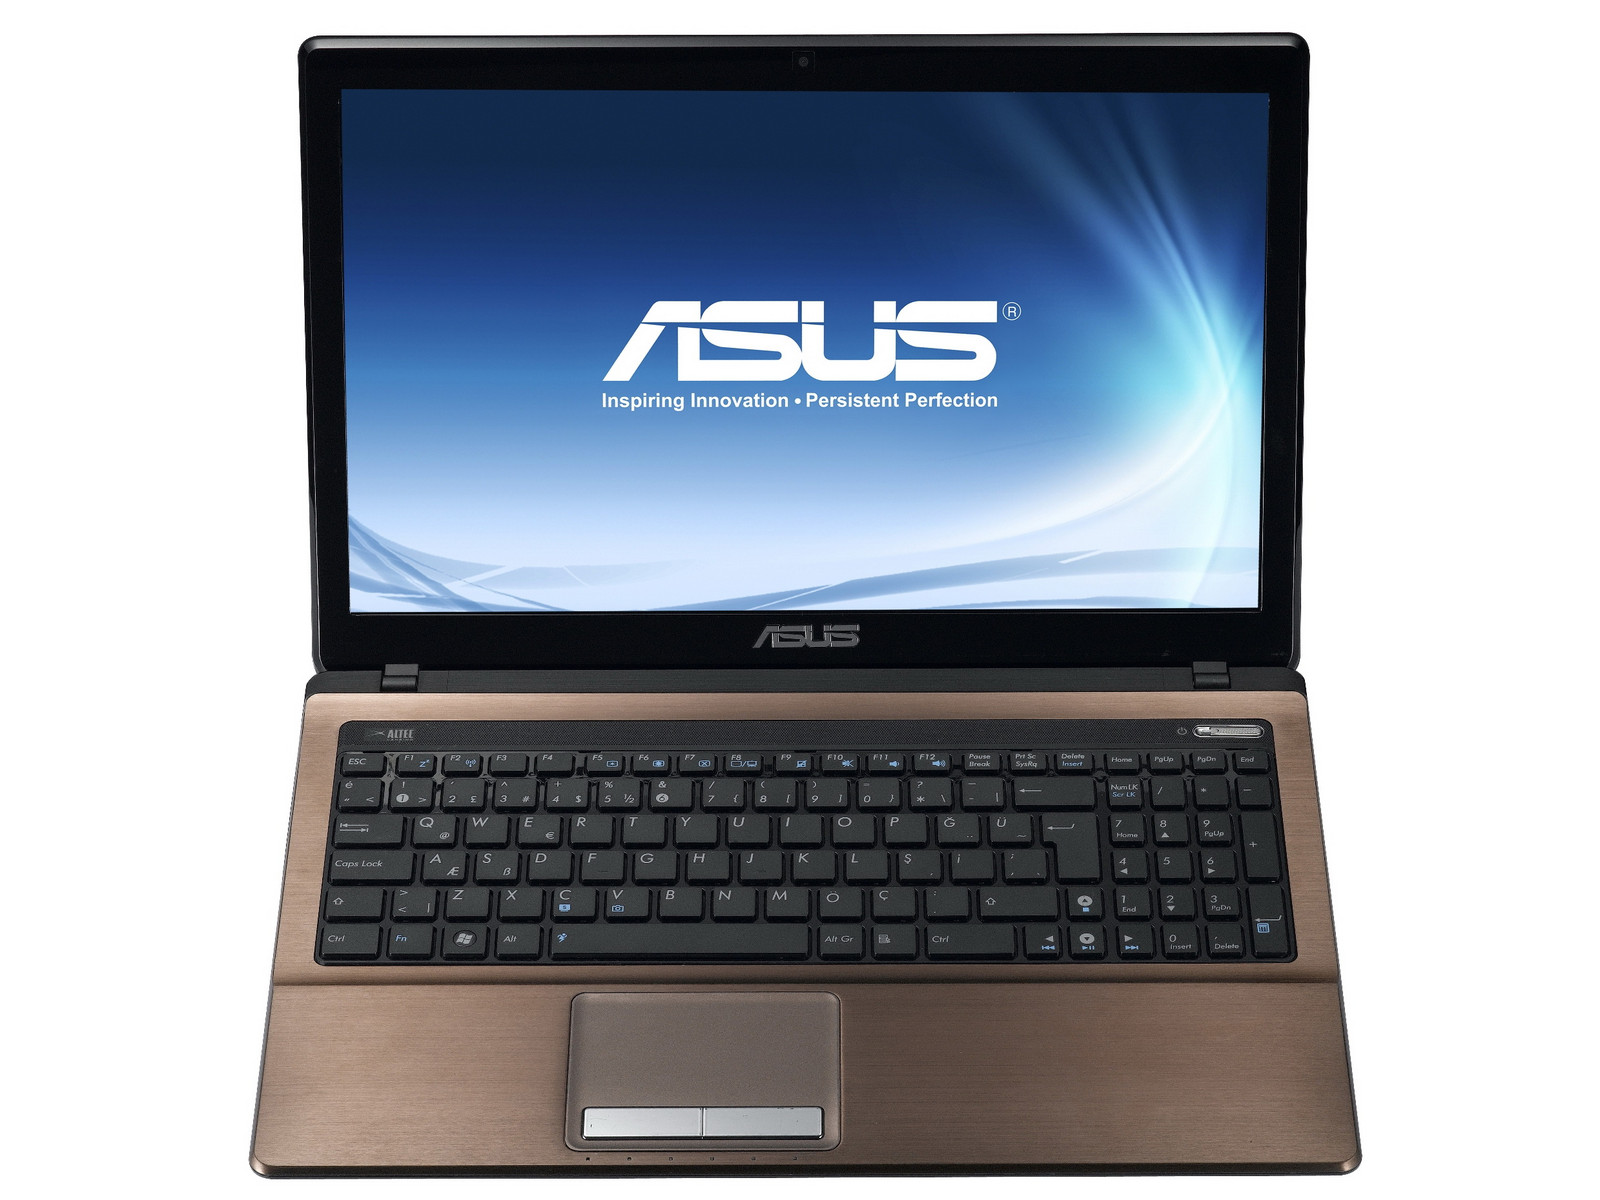 ASUS K73SV INTEL TURBO BOOST MONITOR DRIVERS FOR WINDOWS XP